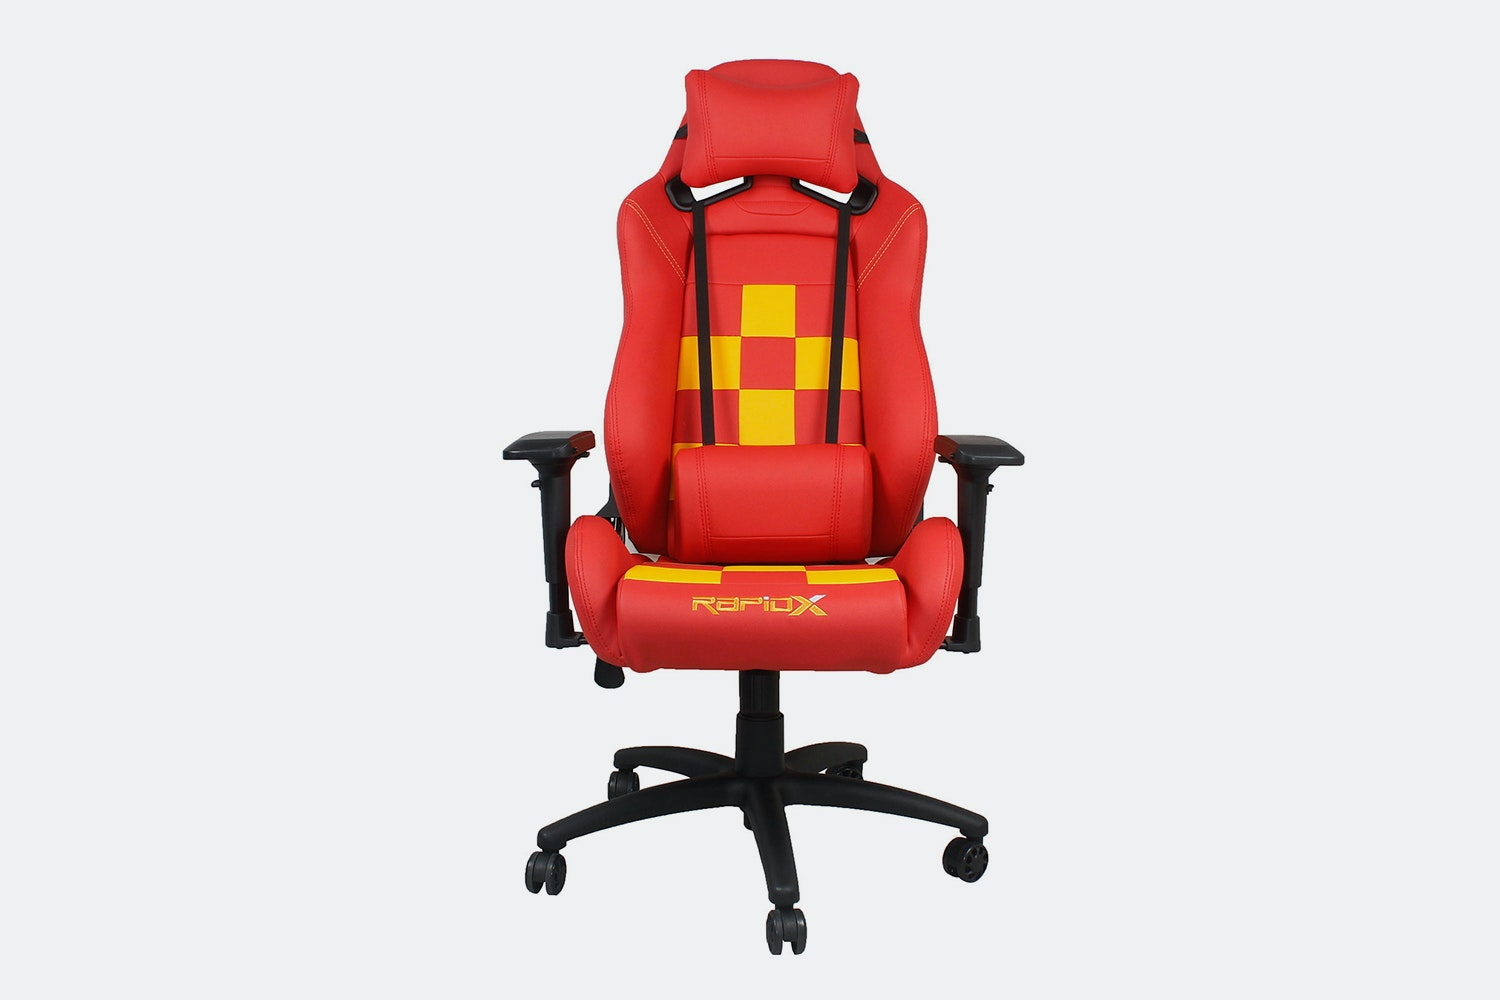 Finish Line Chair - Red/Yellow (-$50)